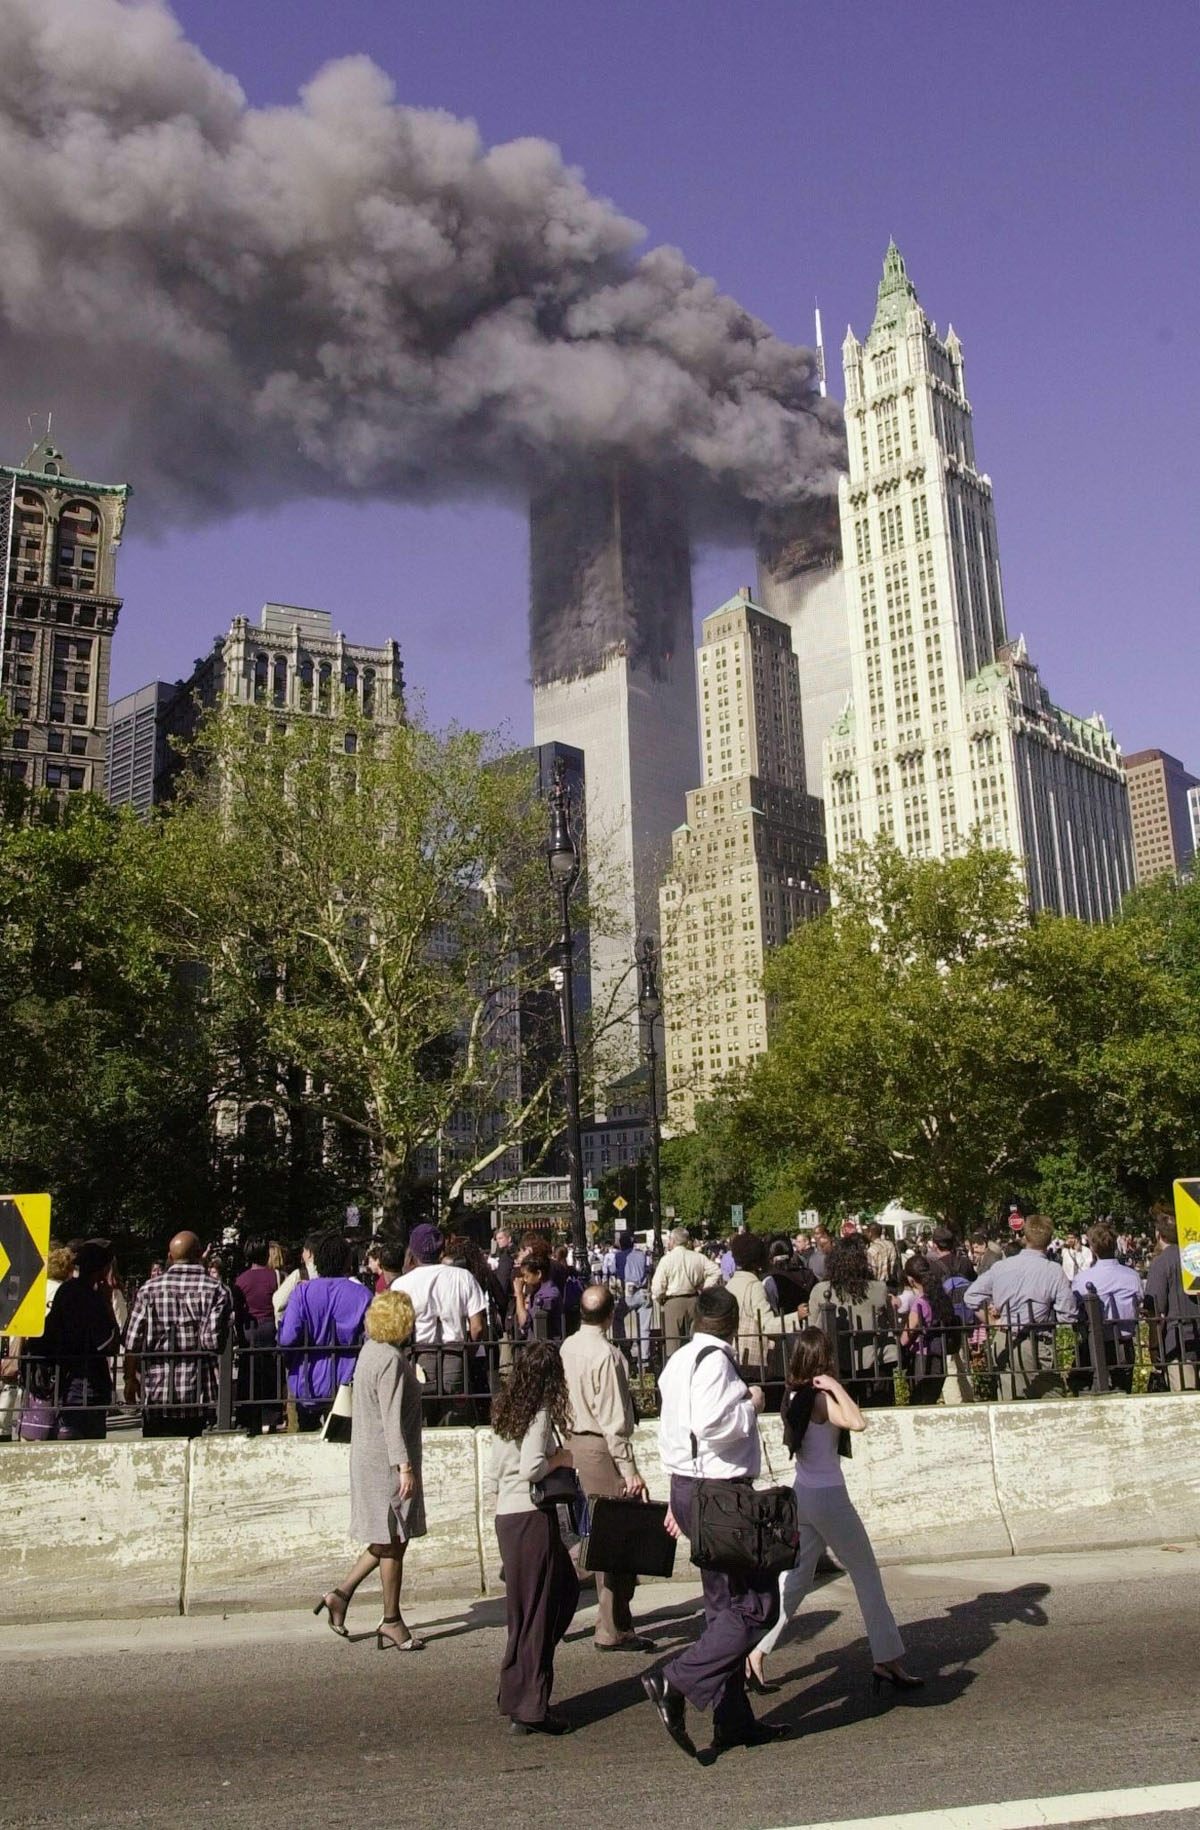 This file photo taken on September 11, 2001 shows pedestrians walking off the Brooklyn Bridge watching as smoke billows from the World Trade Center after two planes crashed into the towers in New York